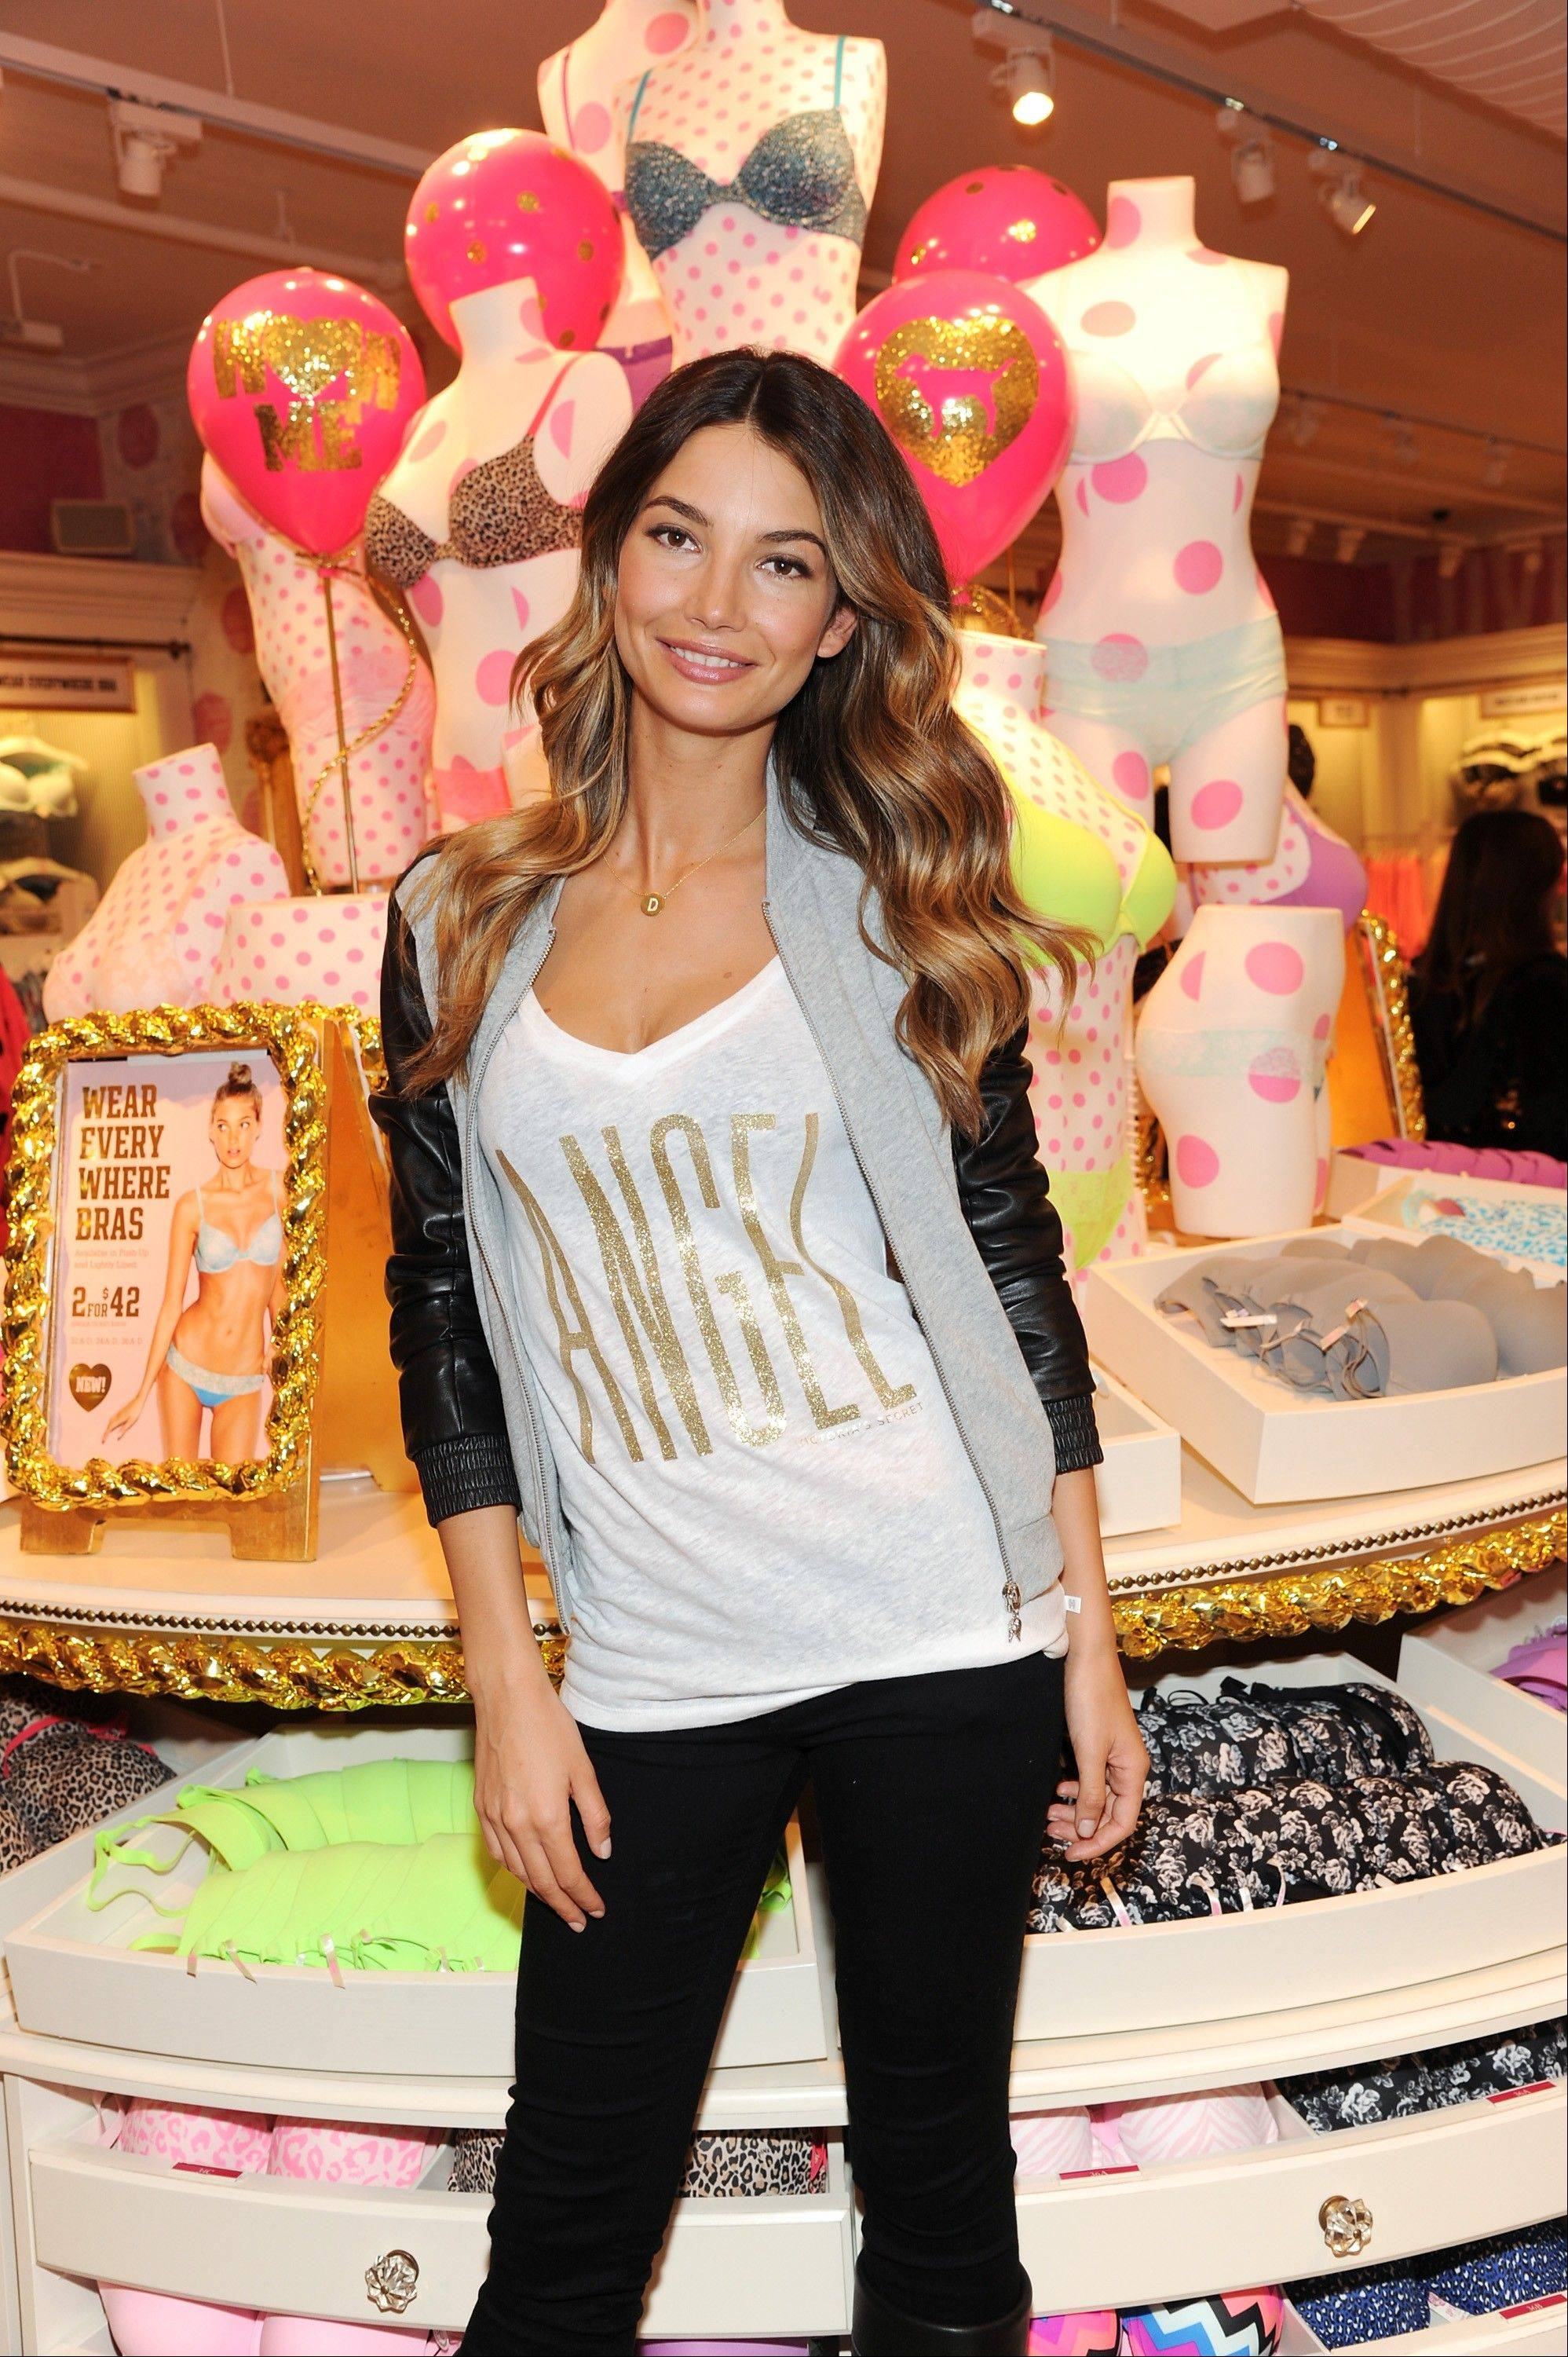 Model Lily Aldridge has been a Victoria's Secret model since 2009.